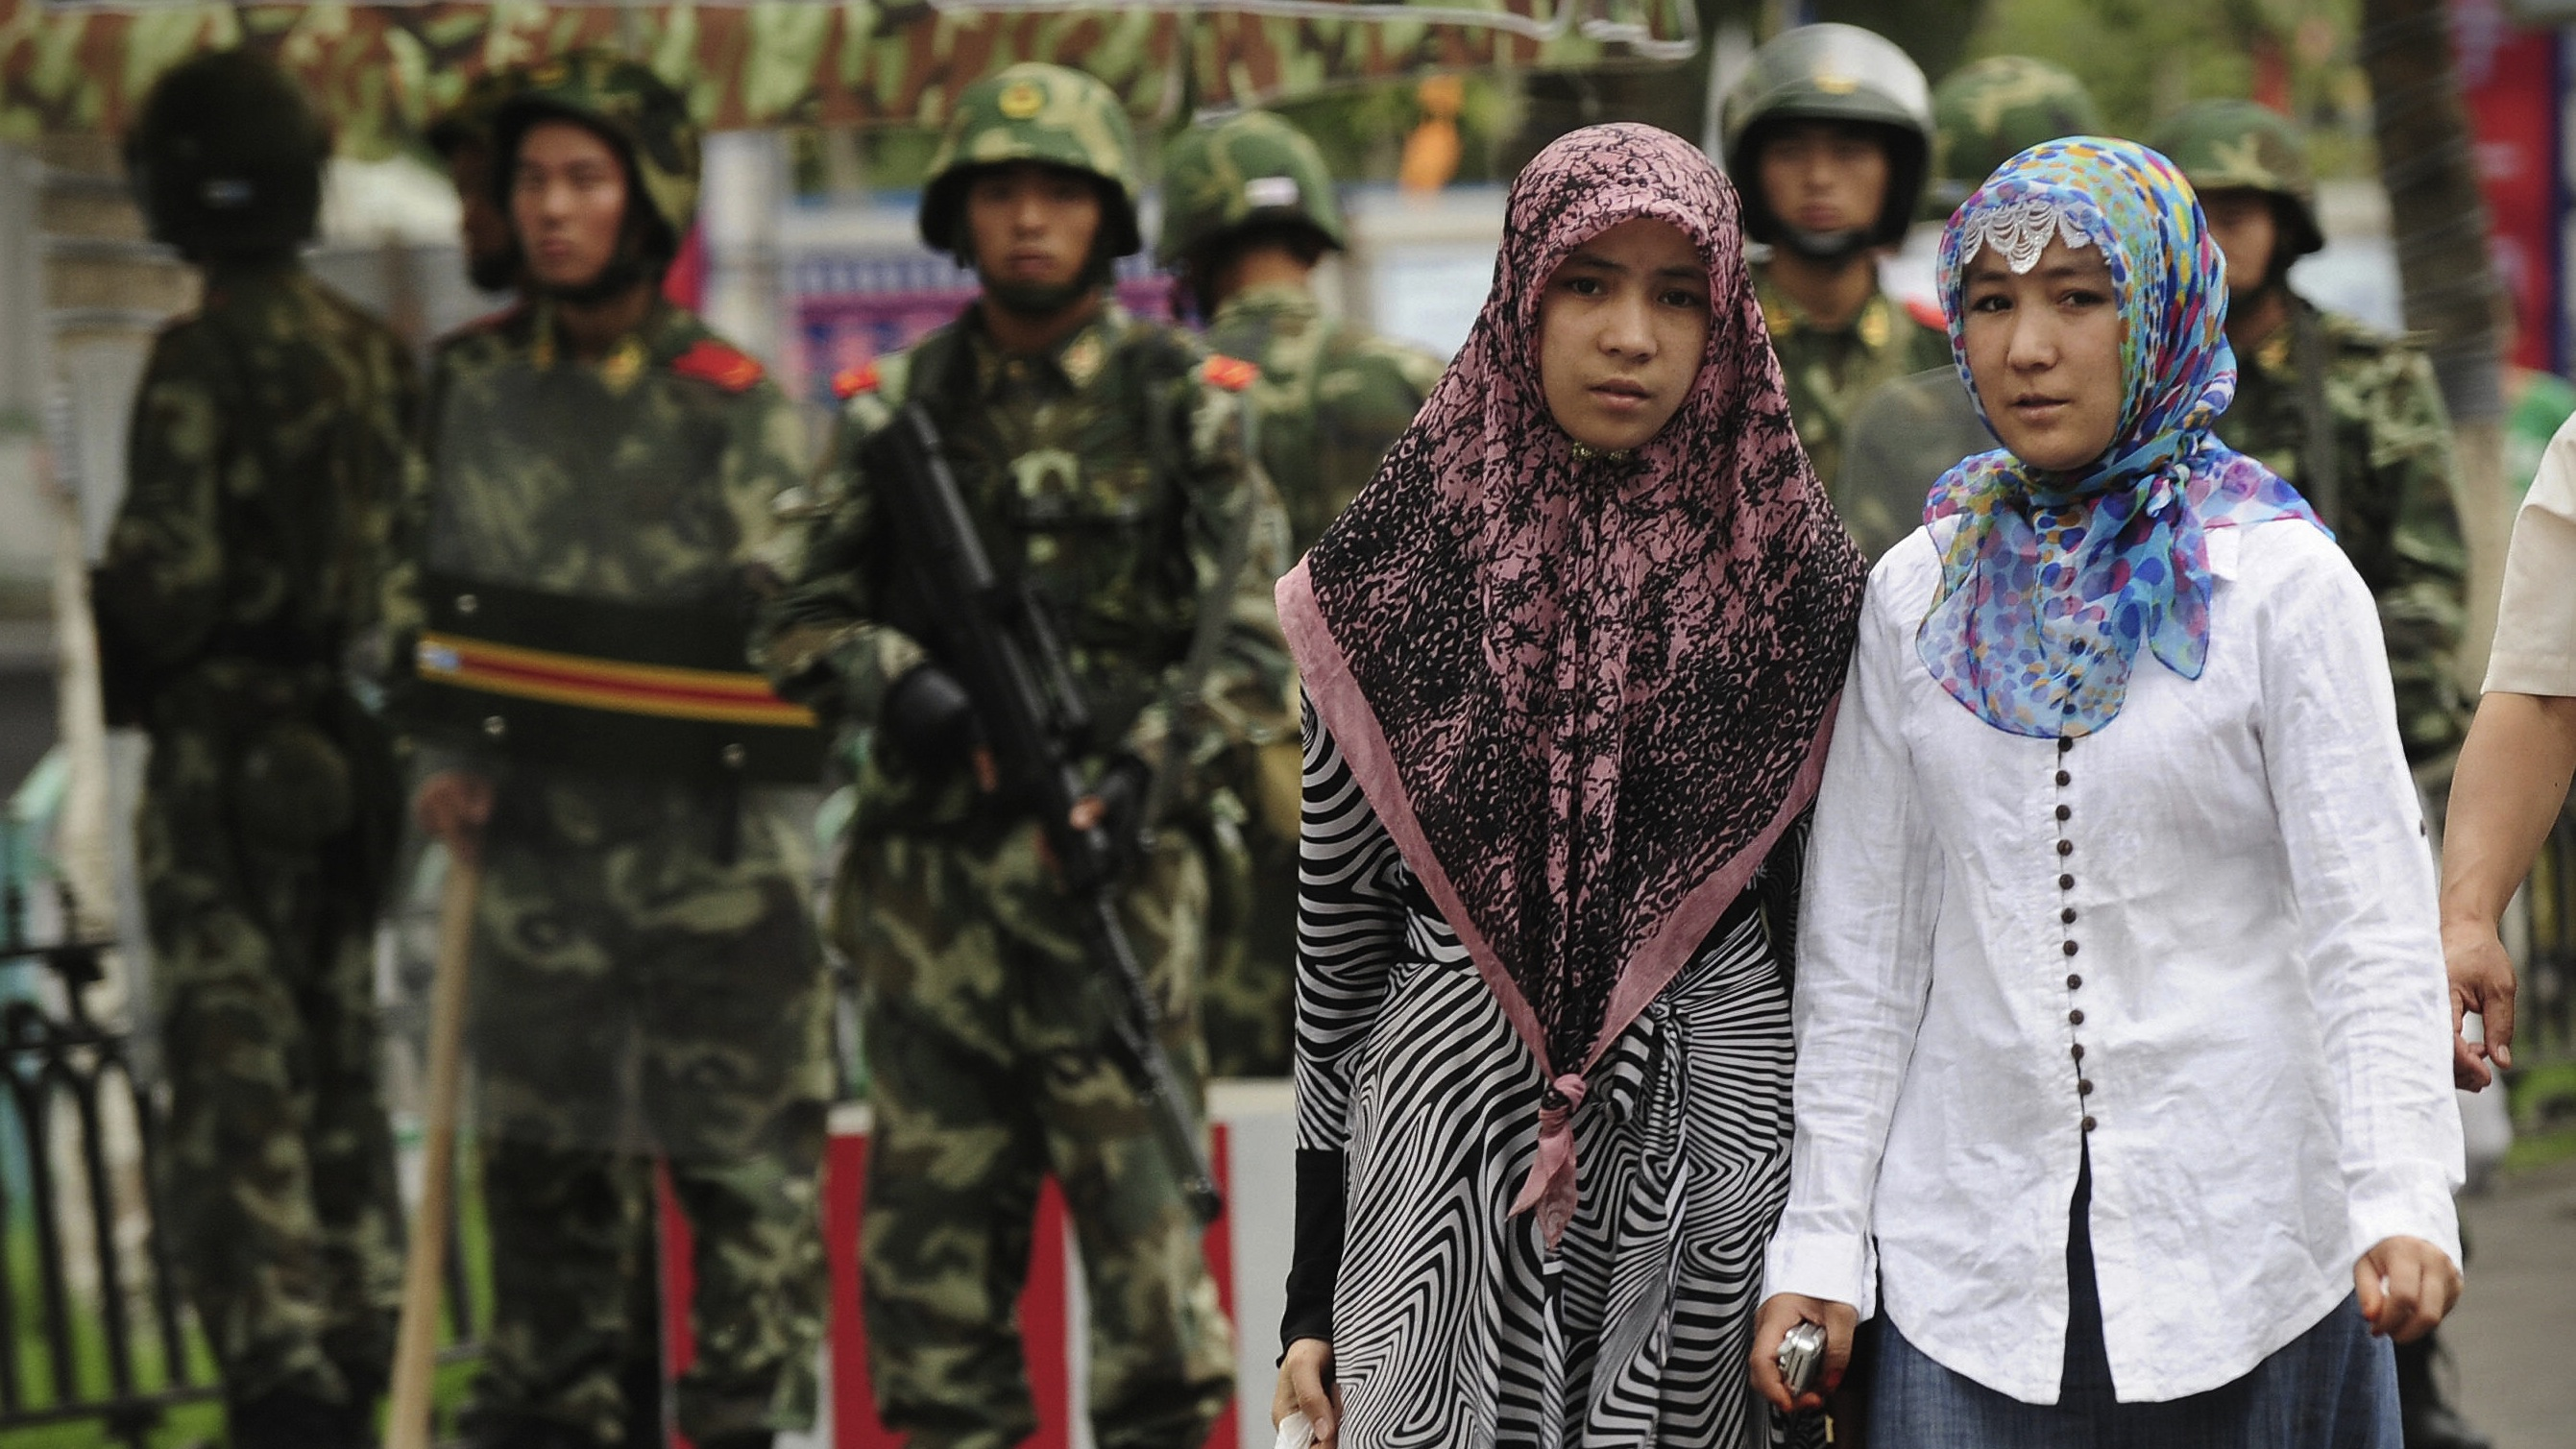 Why are Uyghur Muslims in China being oppressed?